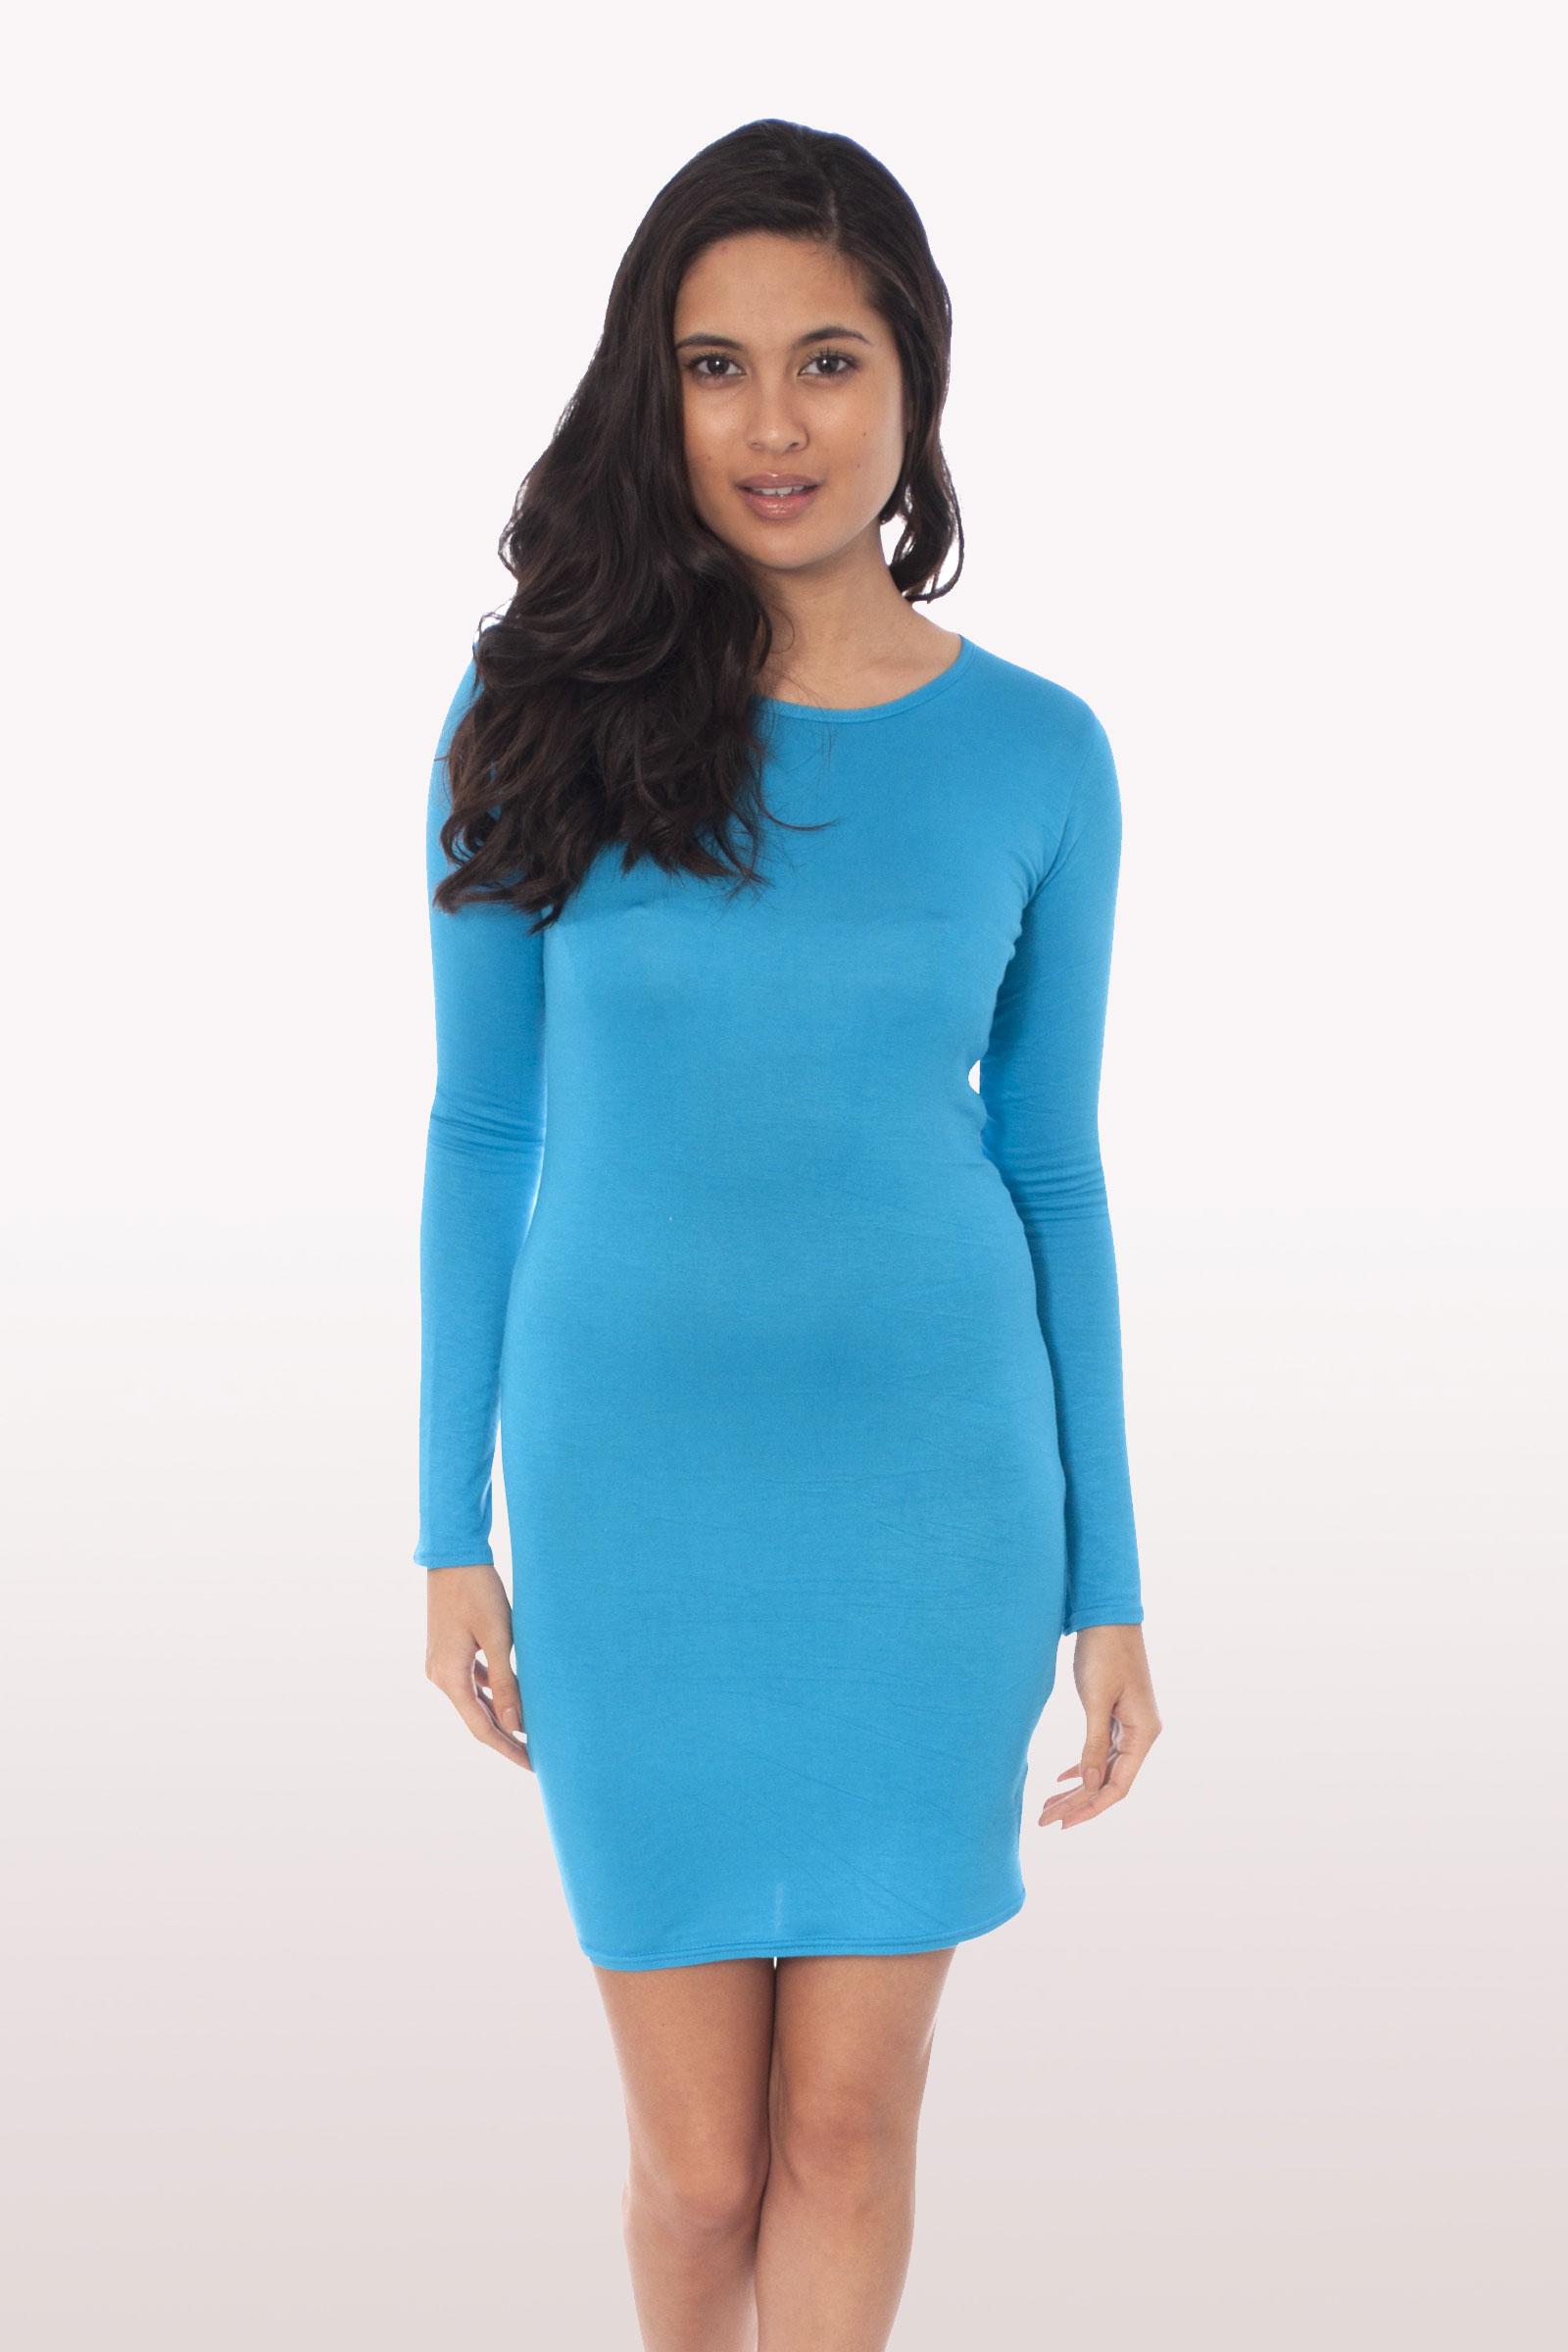 And tops bodycon dress long sleeve uk talbots celeb boutique